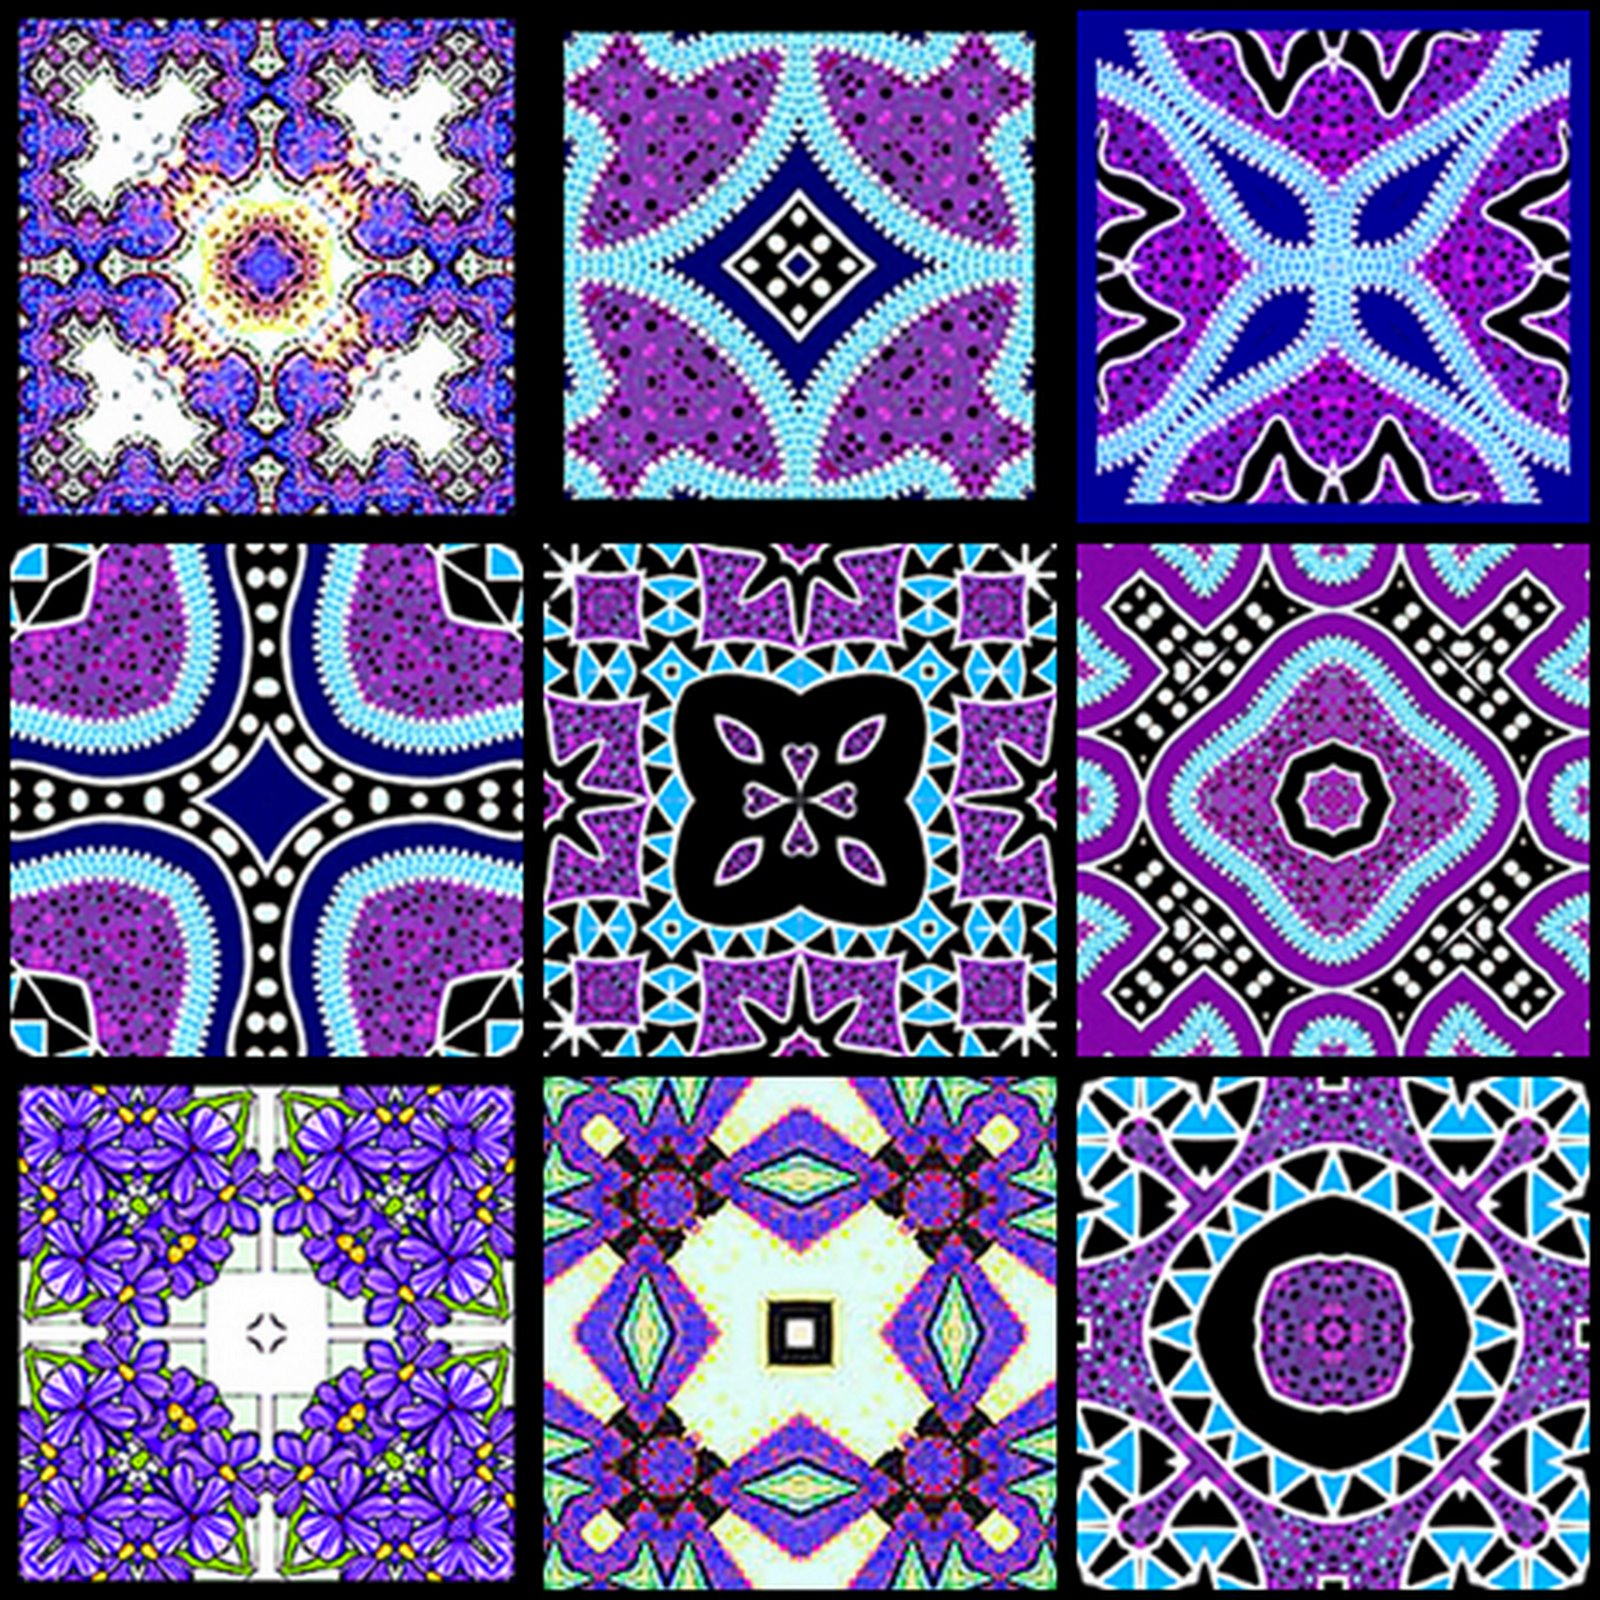 ArtbyJean - Tea Bag Tiles: Block of nine Tea Bag Tiles - Purple